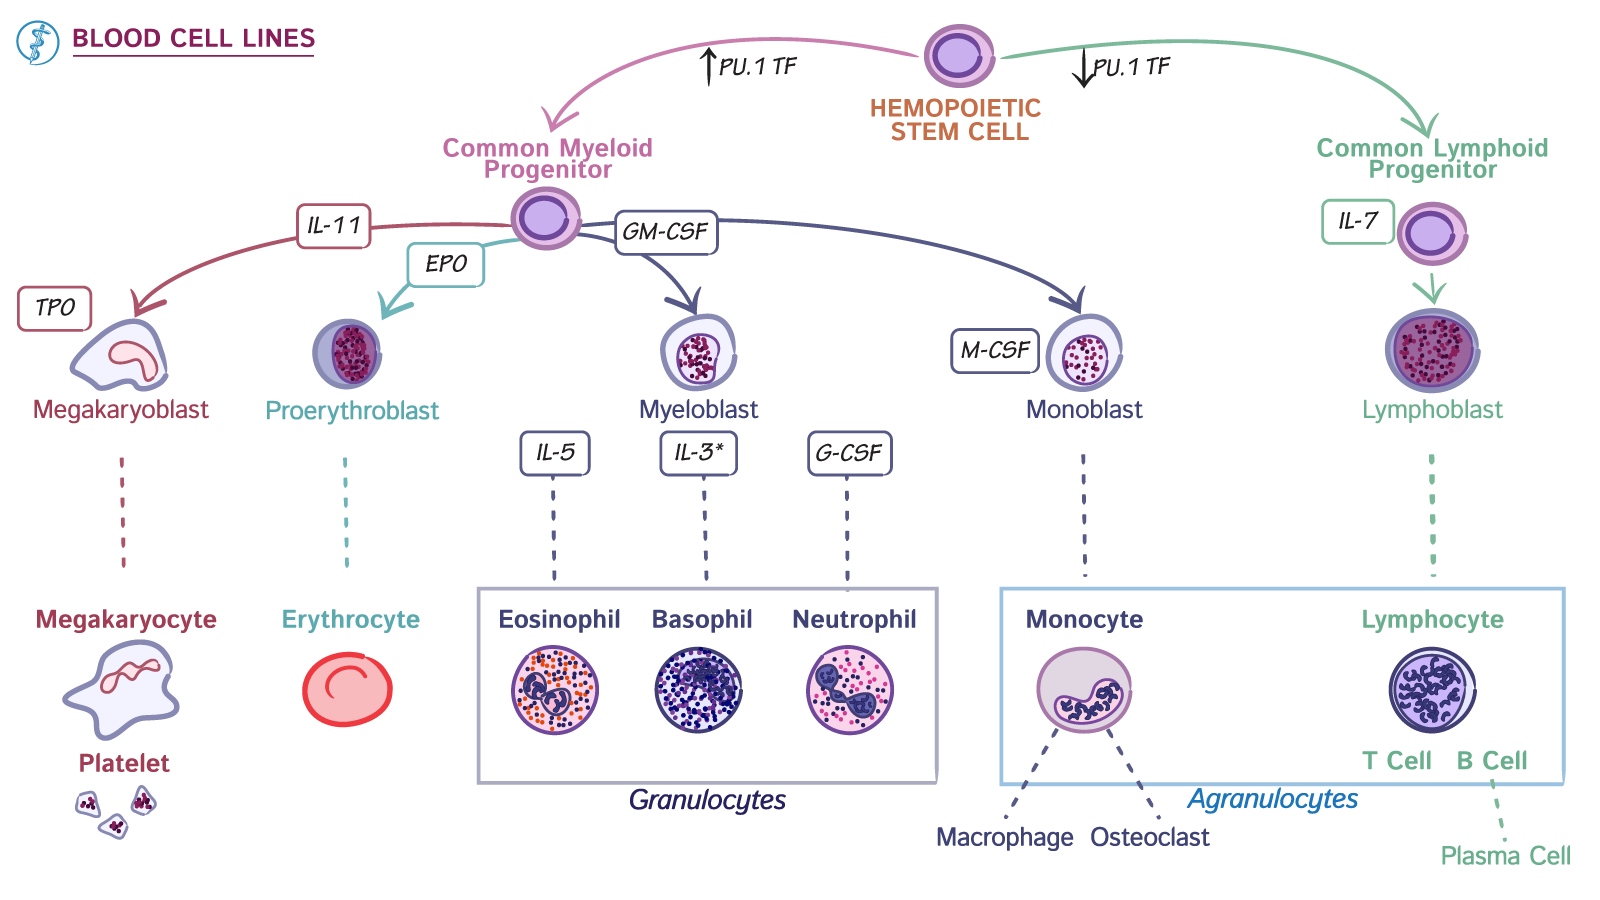 The hematologicimmunologic system blood cell lines draw it to the hematologicimmunologic system blood cell lines draw it to know it ccuart Choice Image